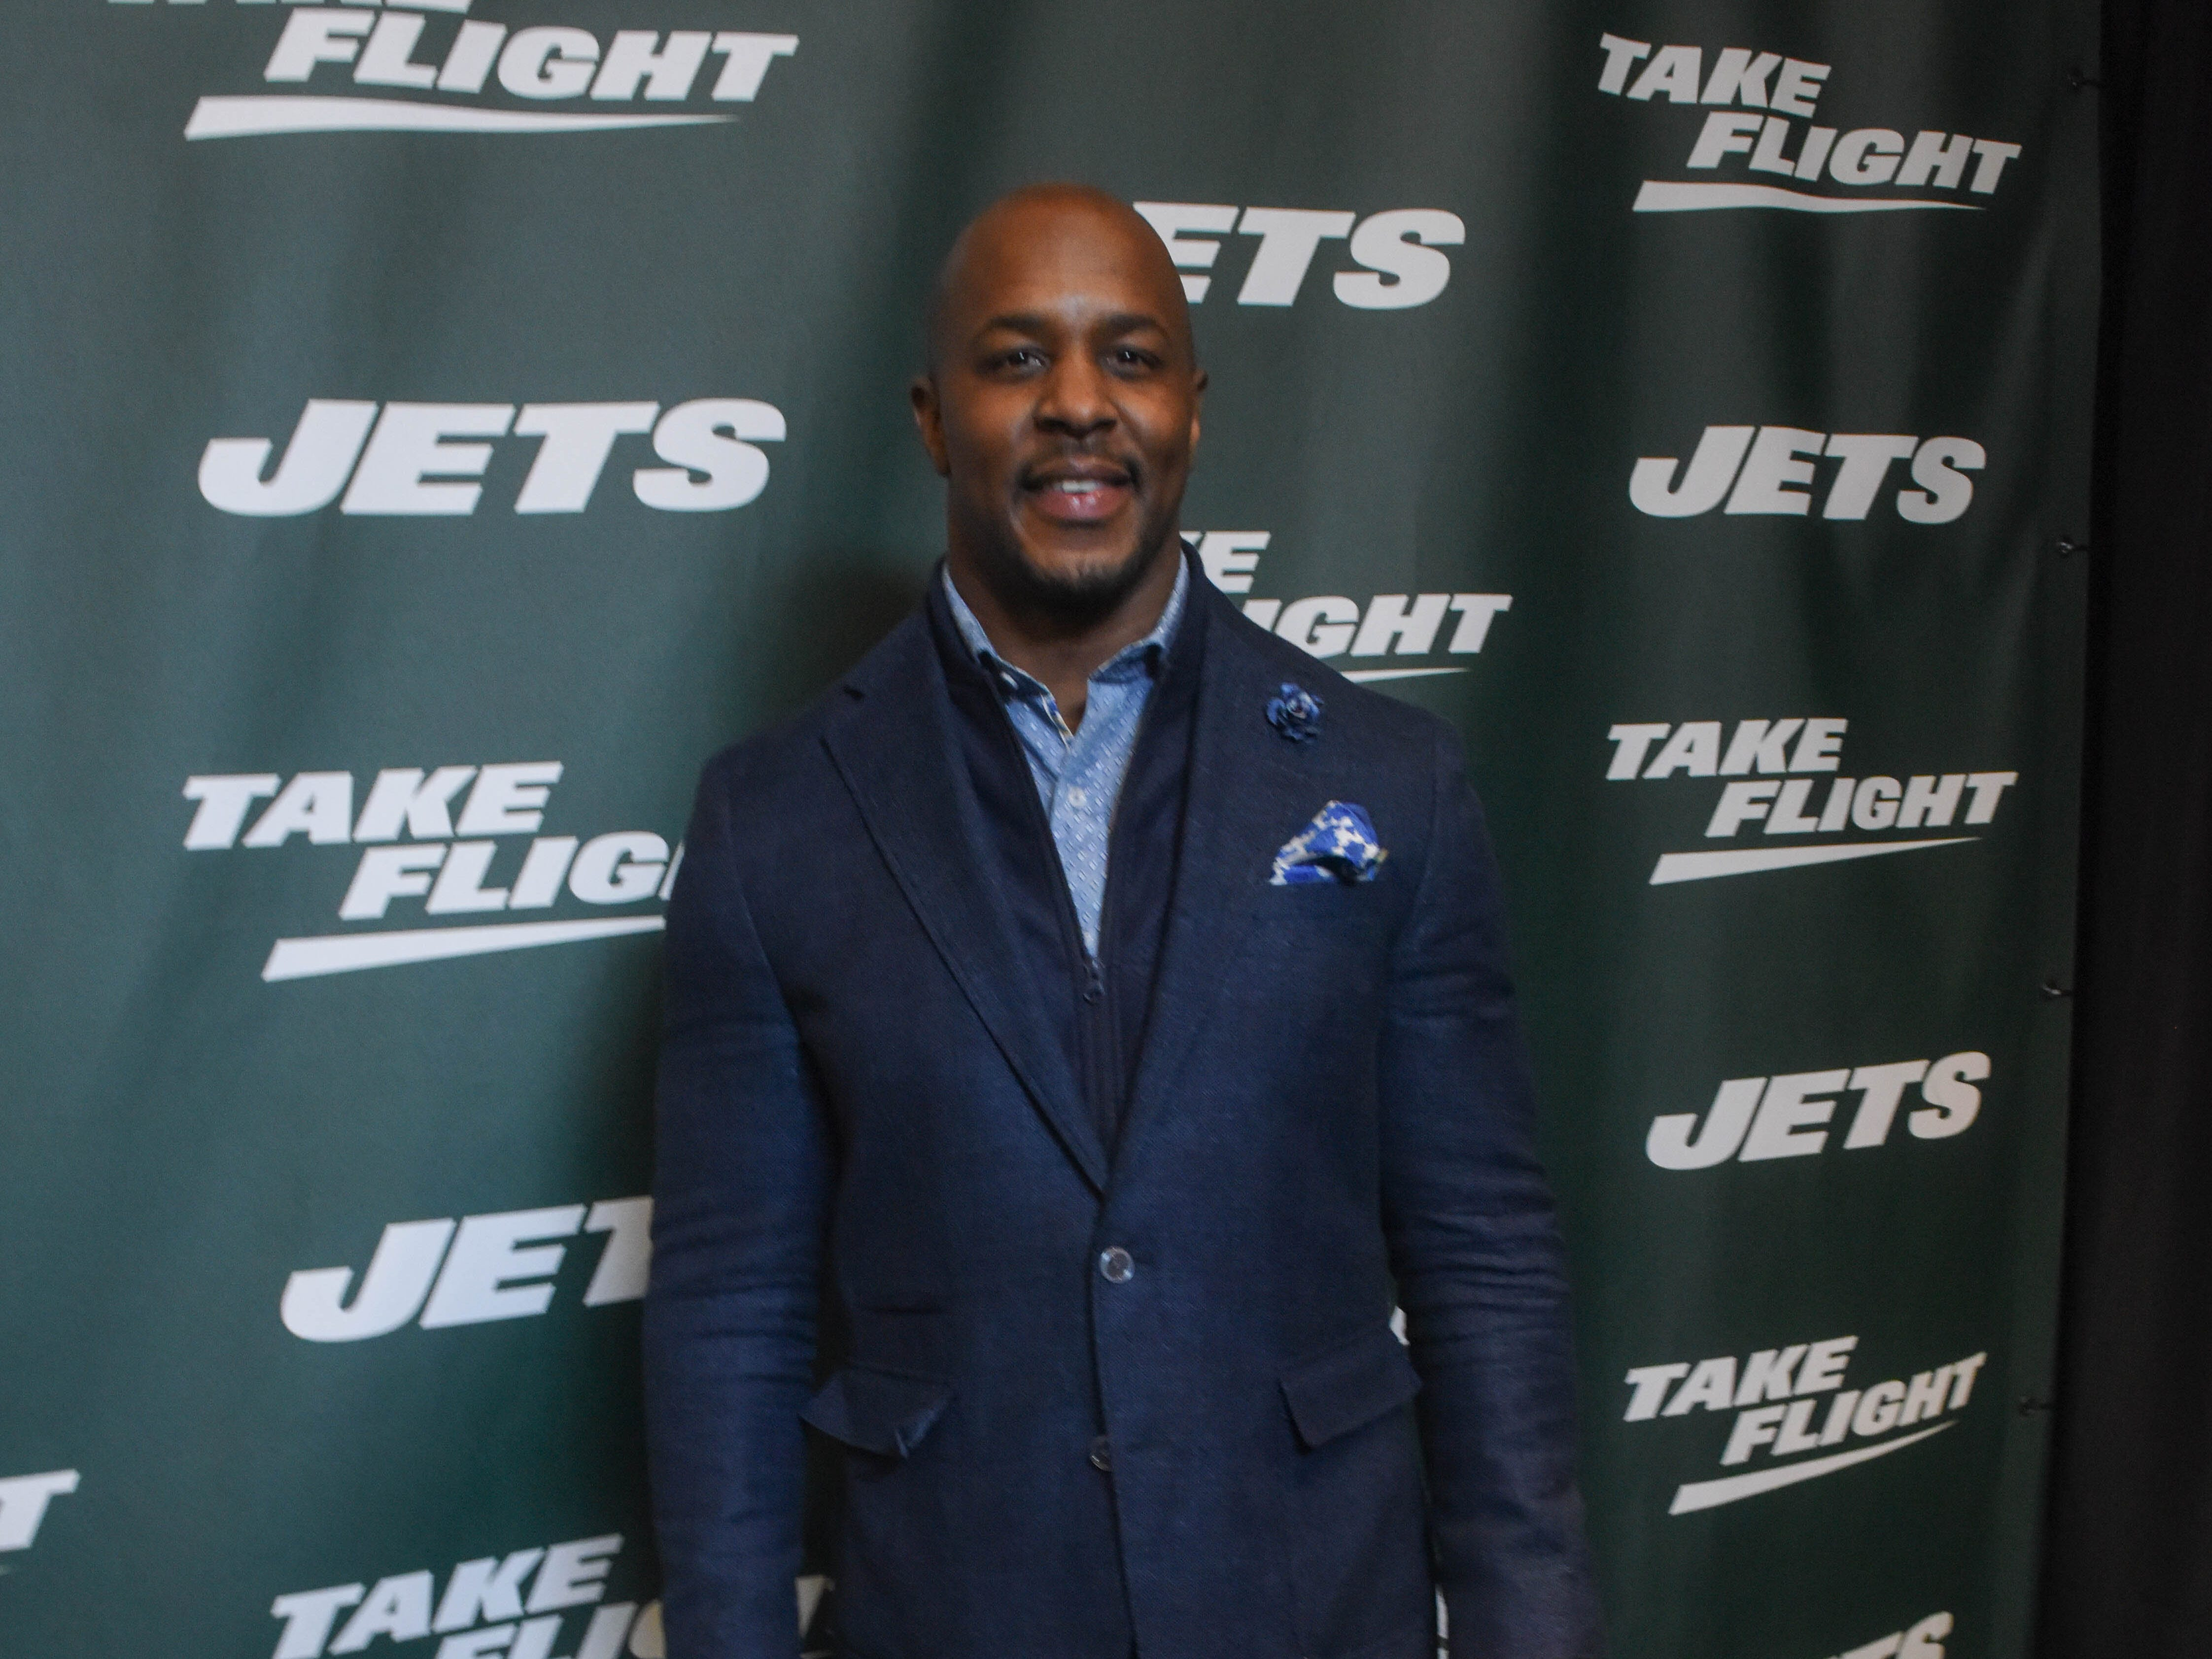 Erik Coleman (NY Jets). The NY Jets unveiled their new football uniforms with an event hosted by JB Smoove at Gotham Hall in New York. 04/05/2019